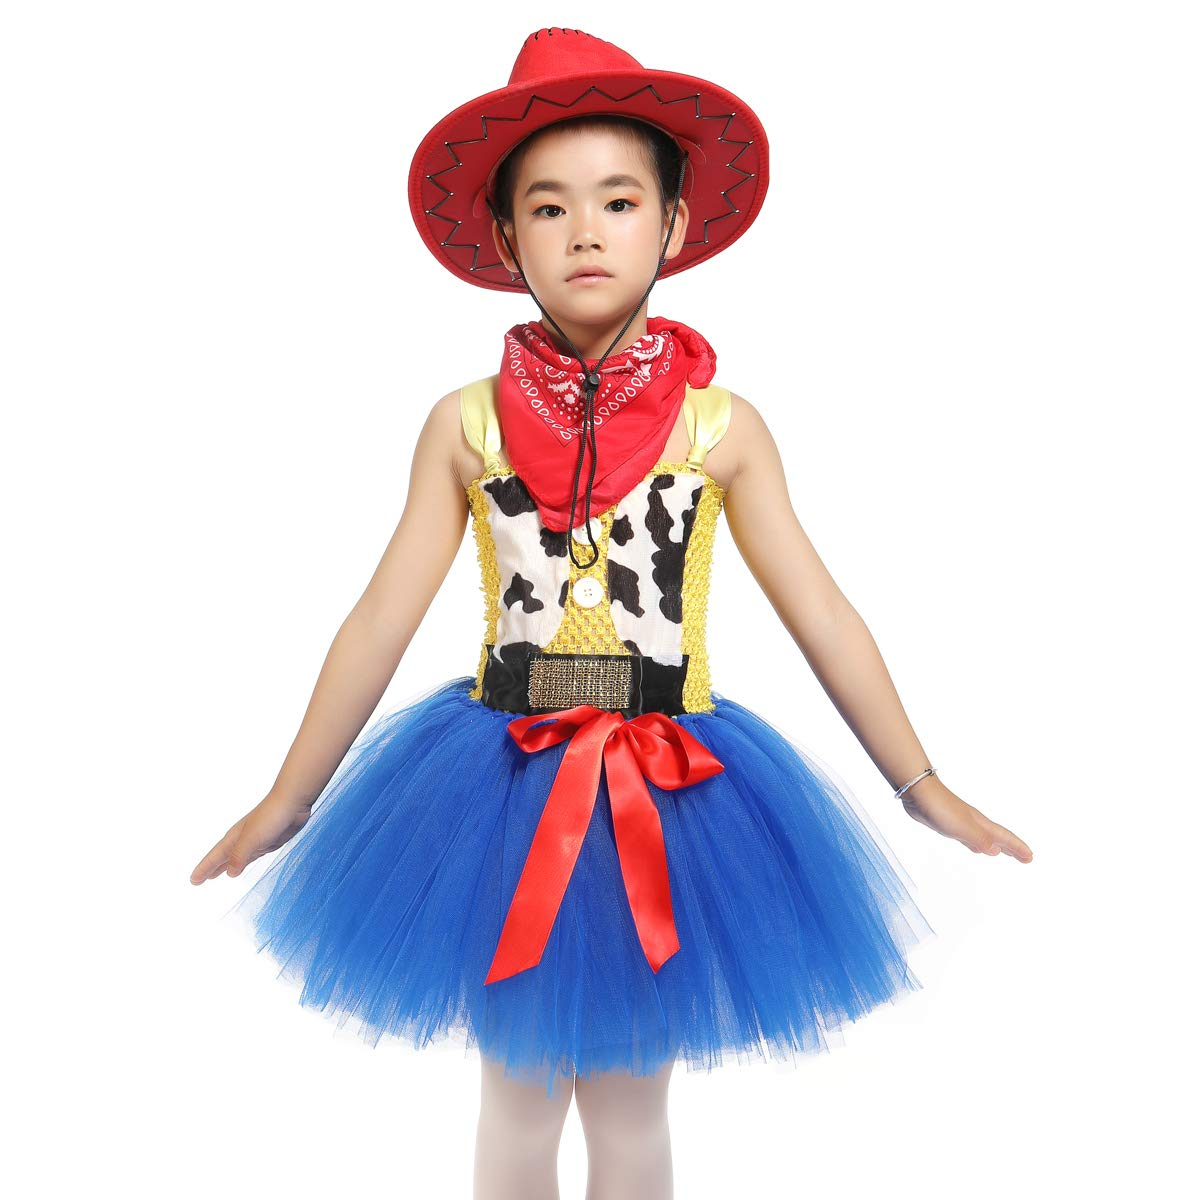 Girls Jessie Fancy Dress Up Cowgirl Costume Tutu Dresses with Bandana Princess Fancy Halloween Birthday Party Outfit (S)